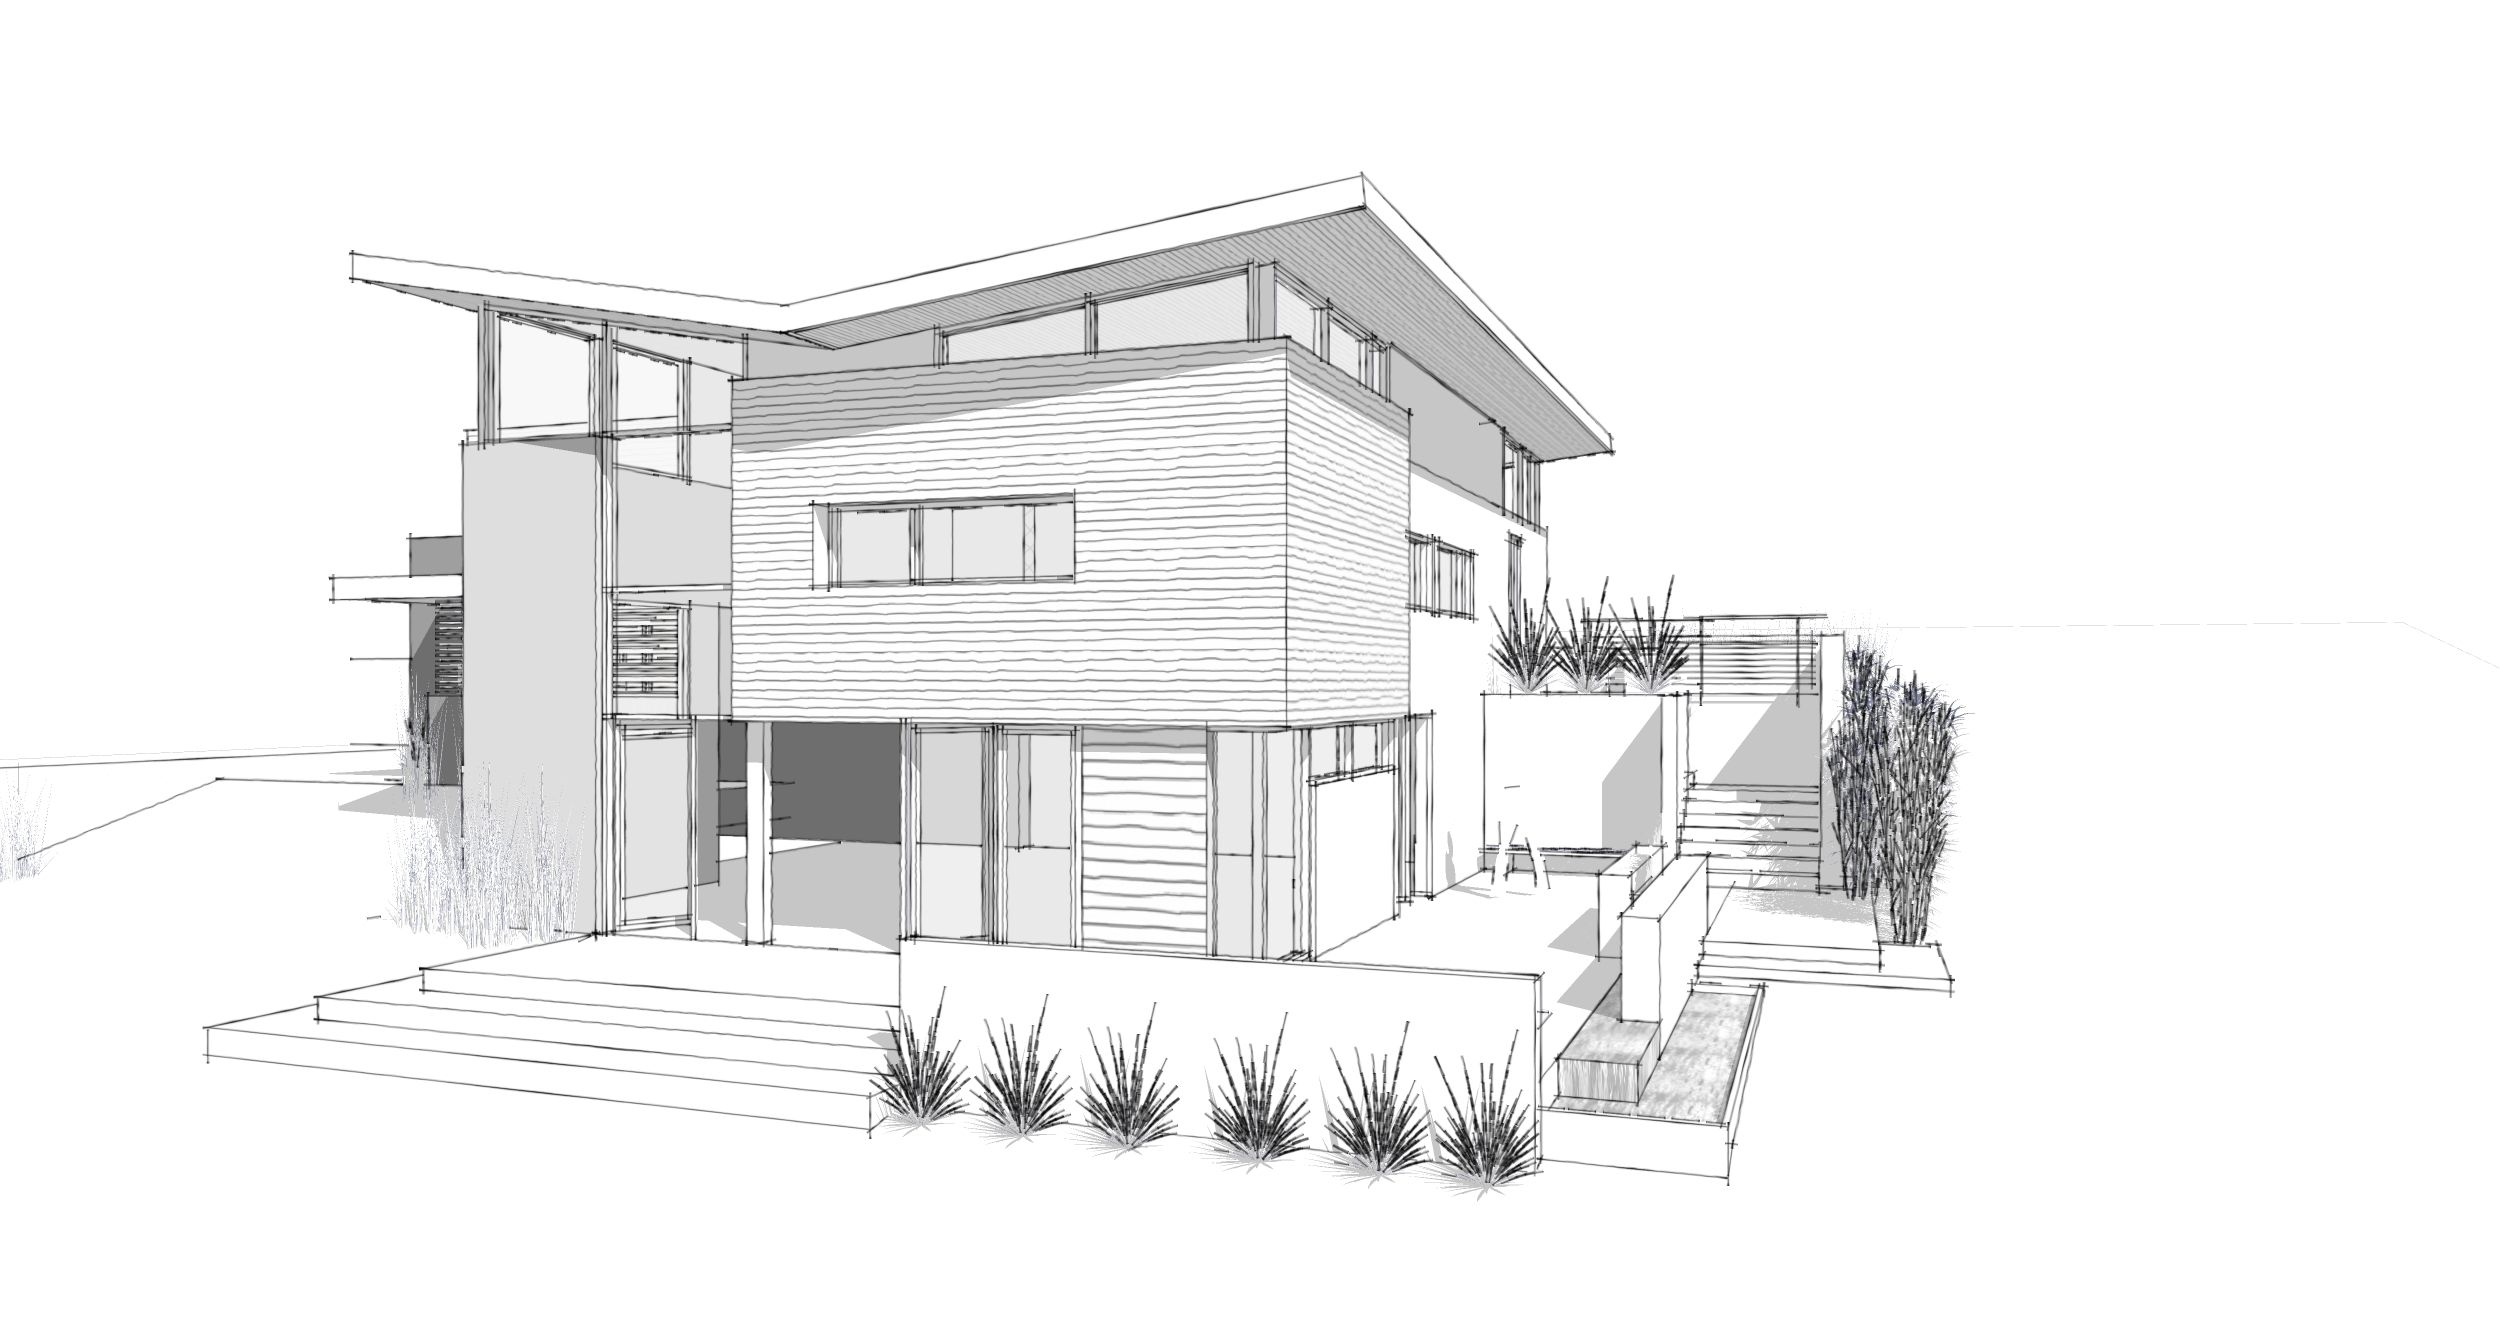 Modern home architecture sketches design ideas 13435 for Free architectural drawing program